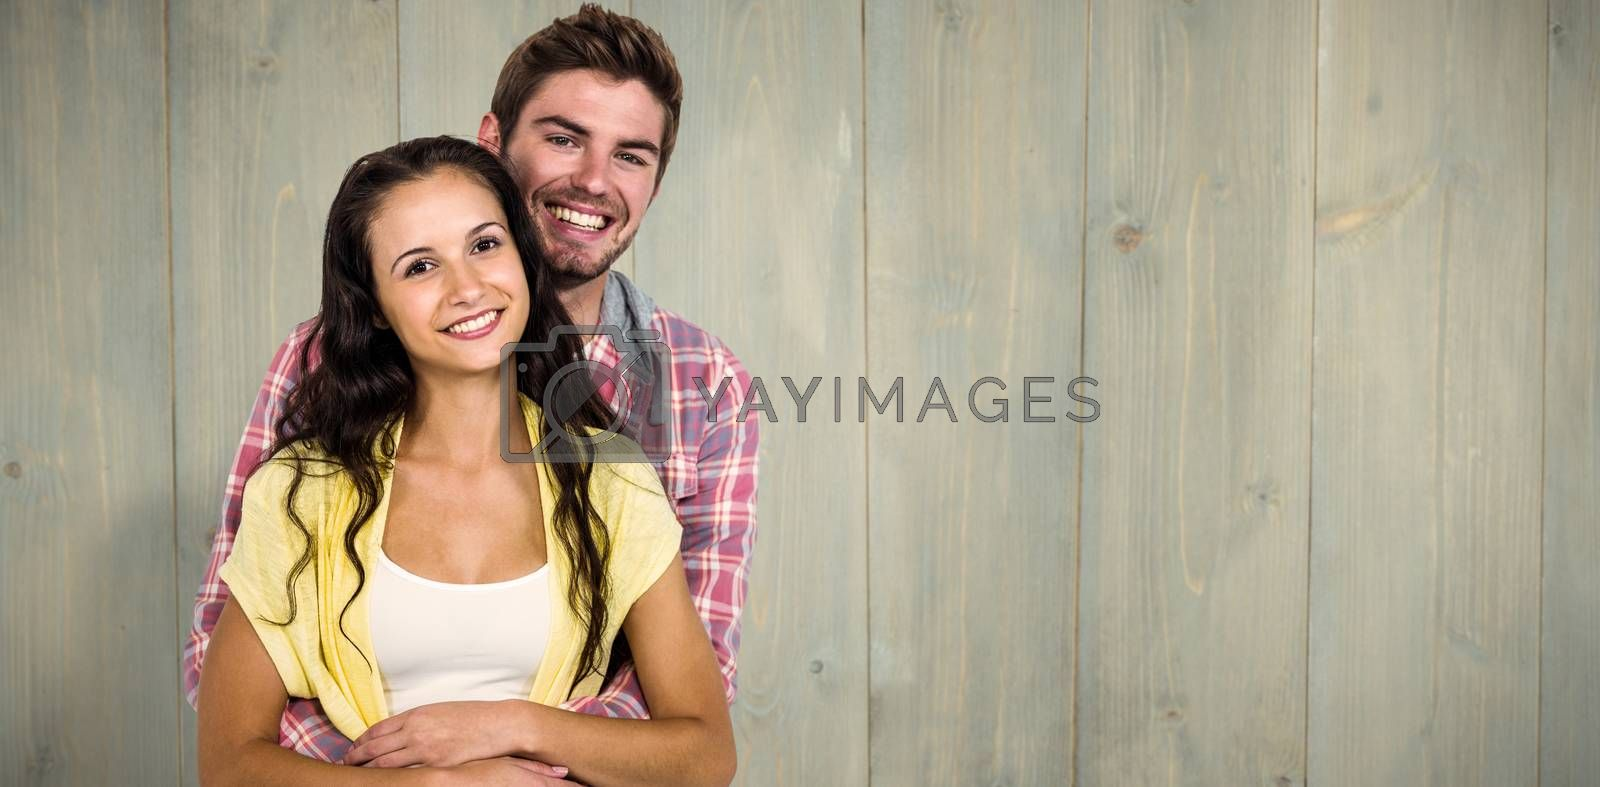 Happy couple hugging and looking at camera against wooden planks